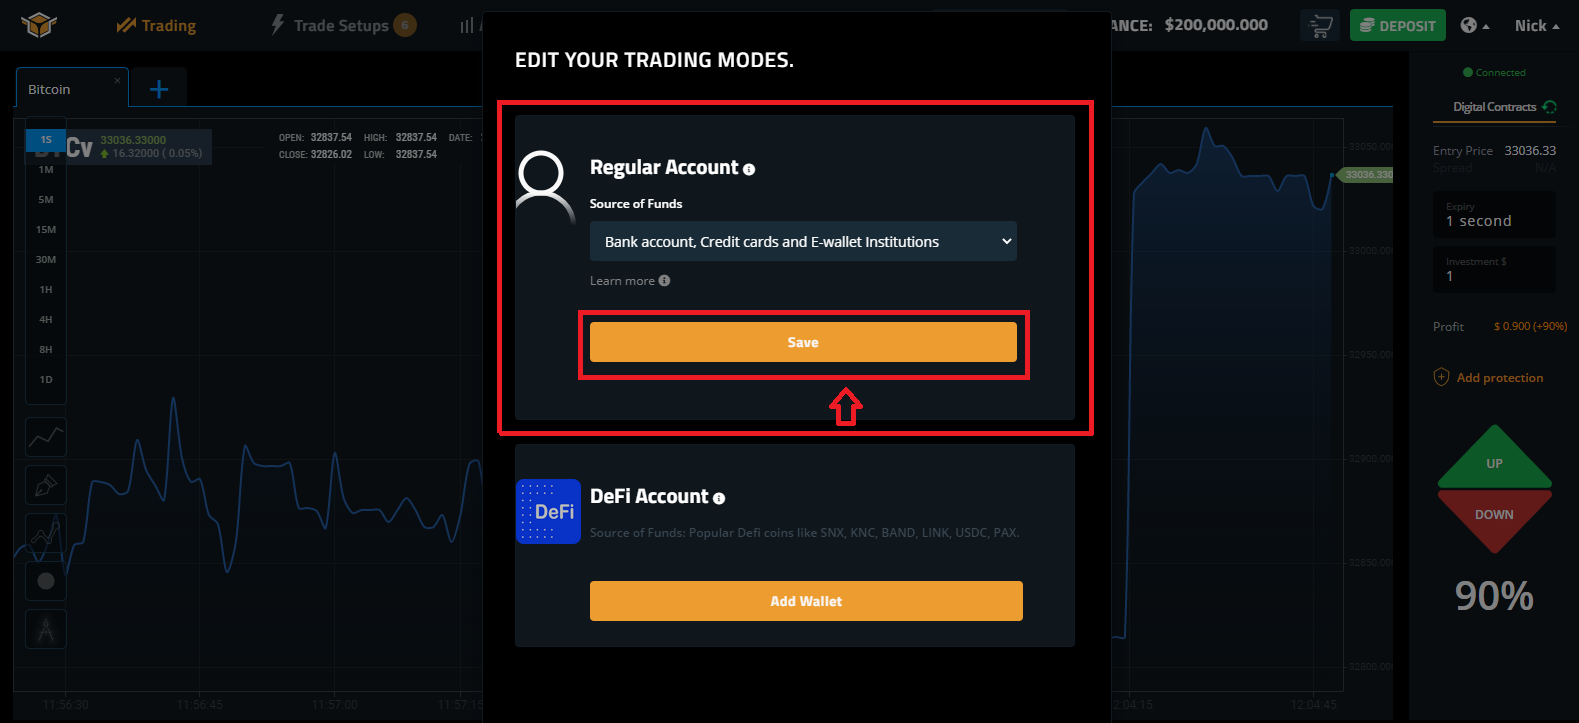 How to Make a Deposit in Spectre.ai